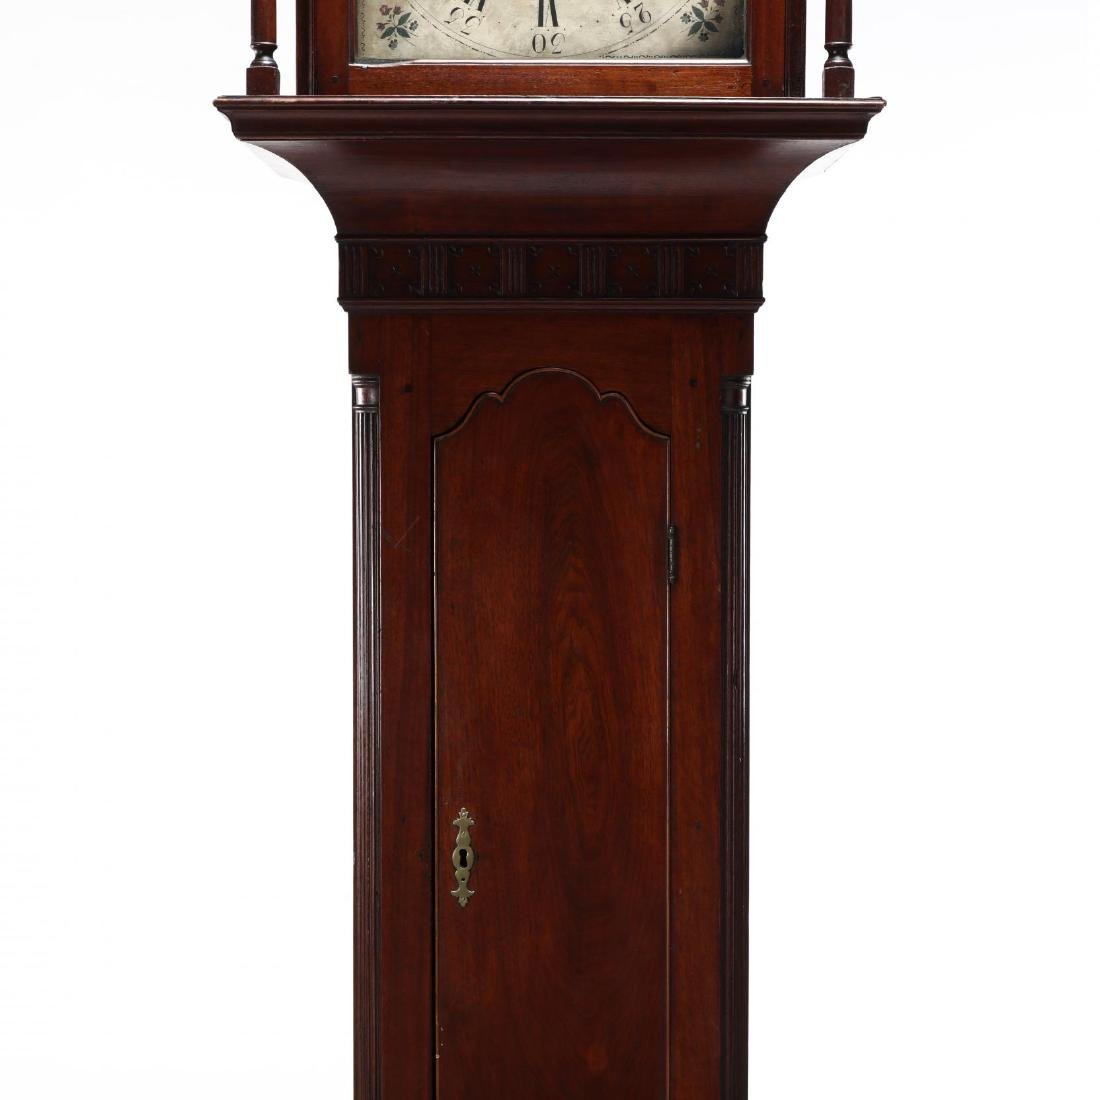 American Chippendale Mahogany Tall Case Clock - 3